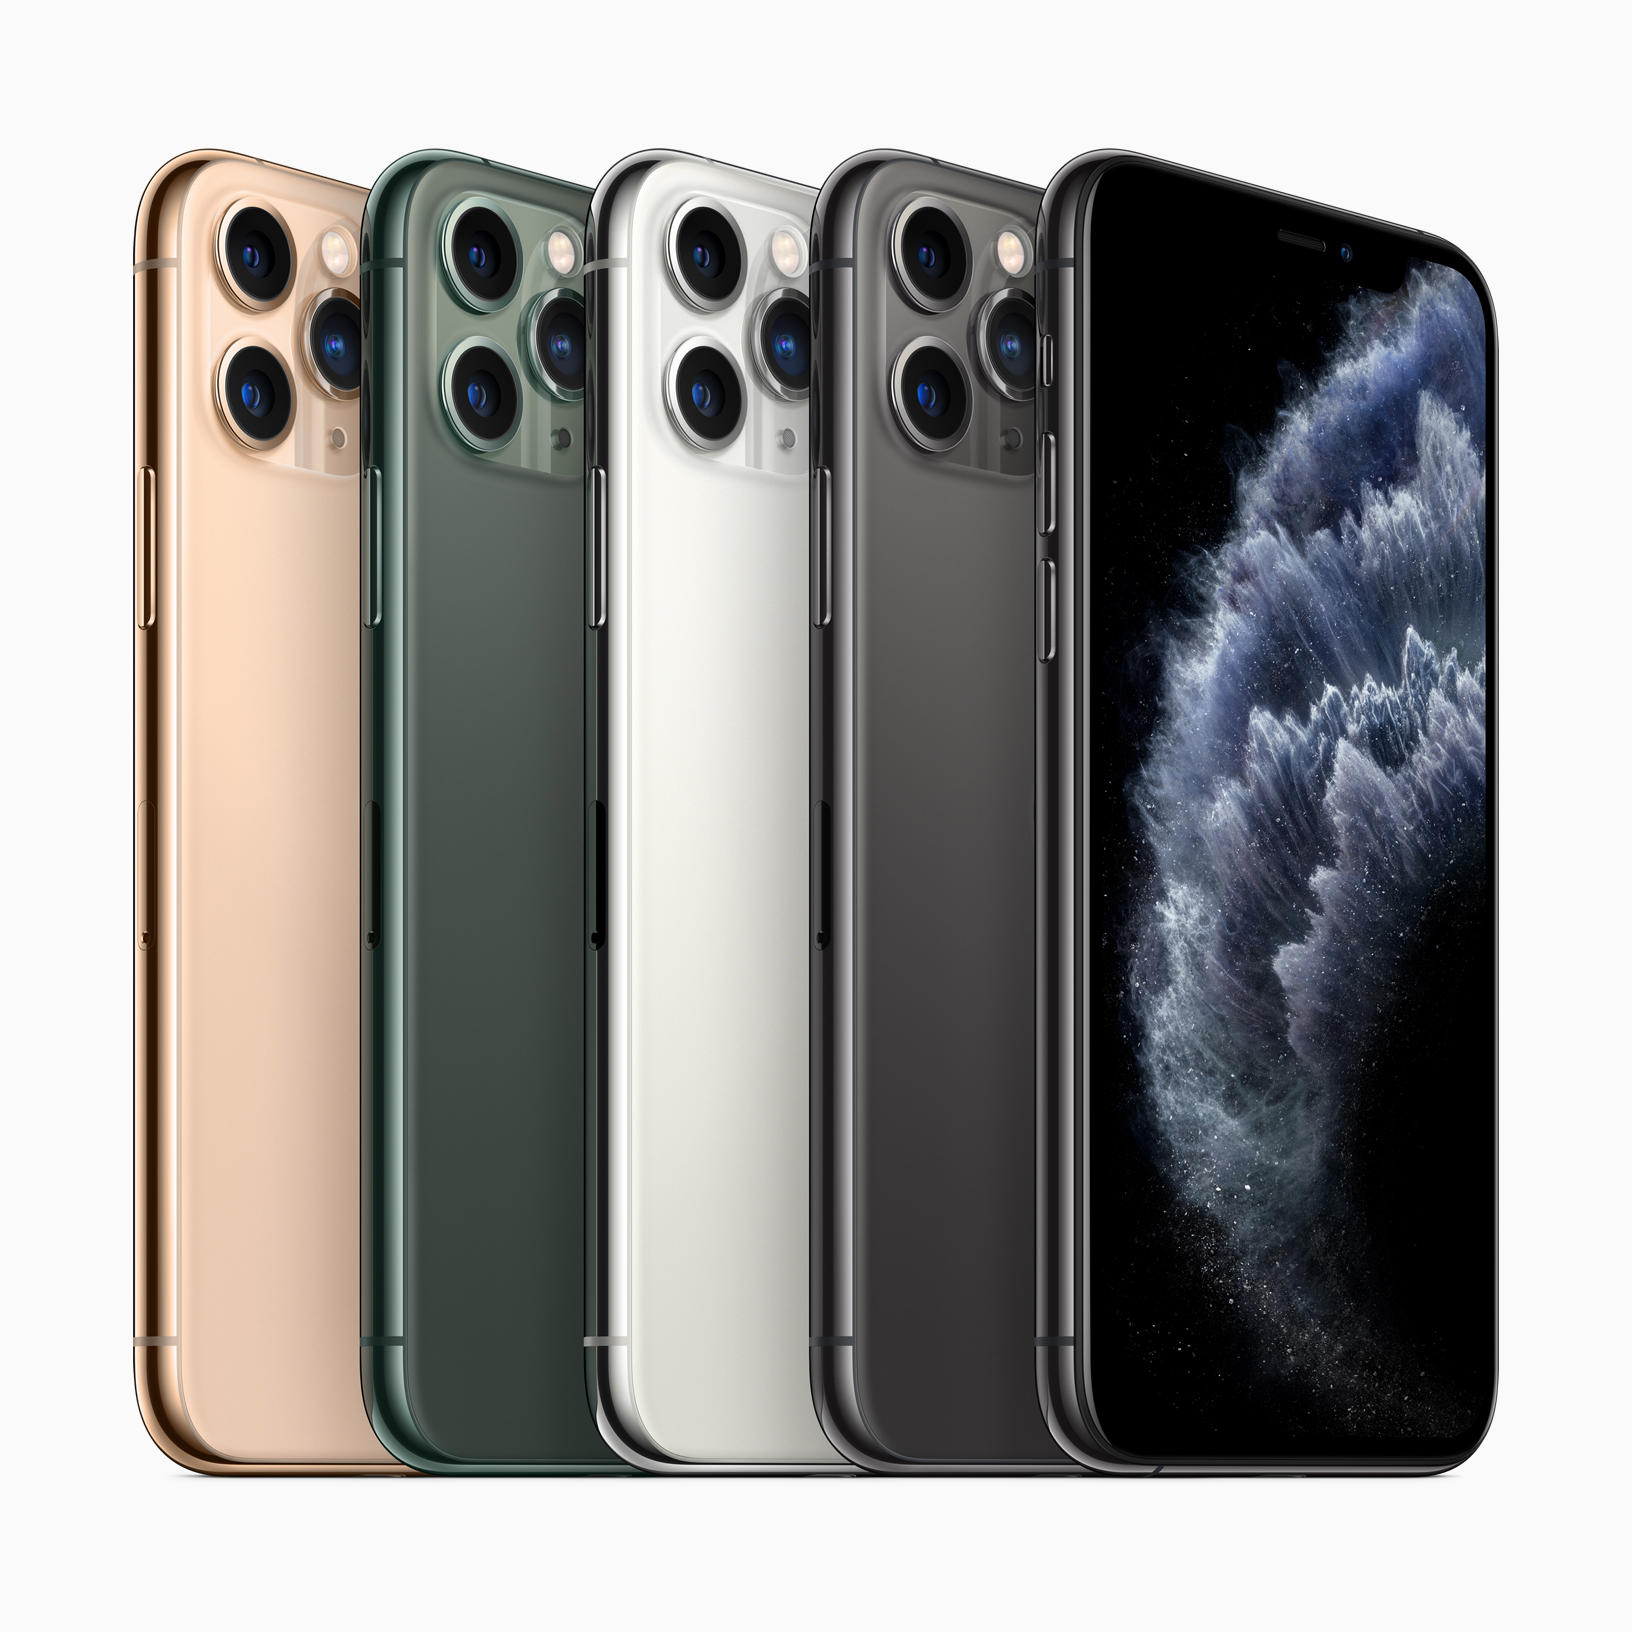 Apple iPhone 11 Pro Max - Jawalmax